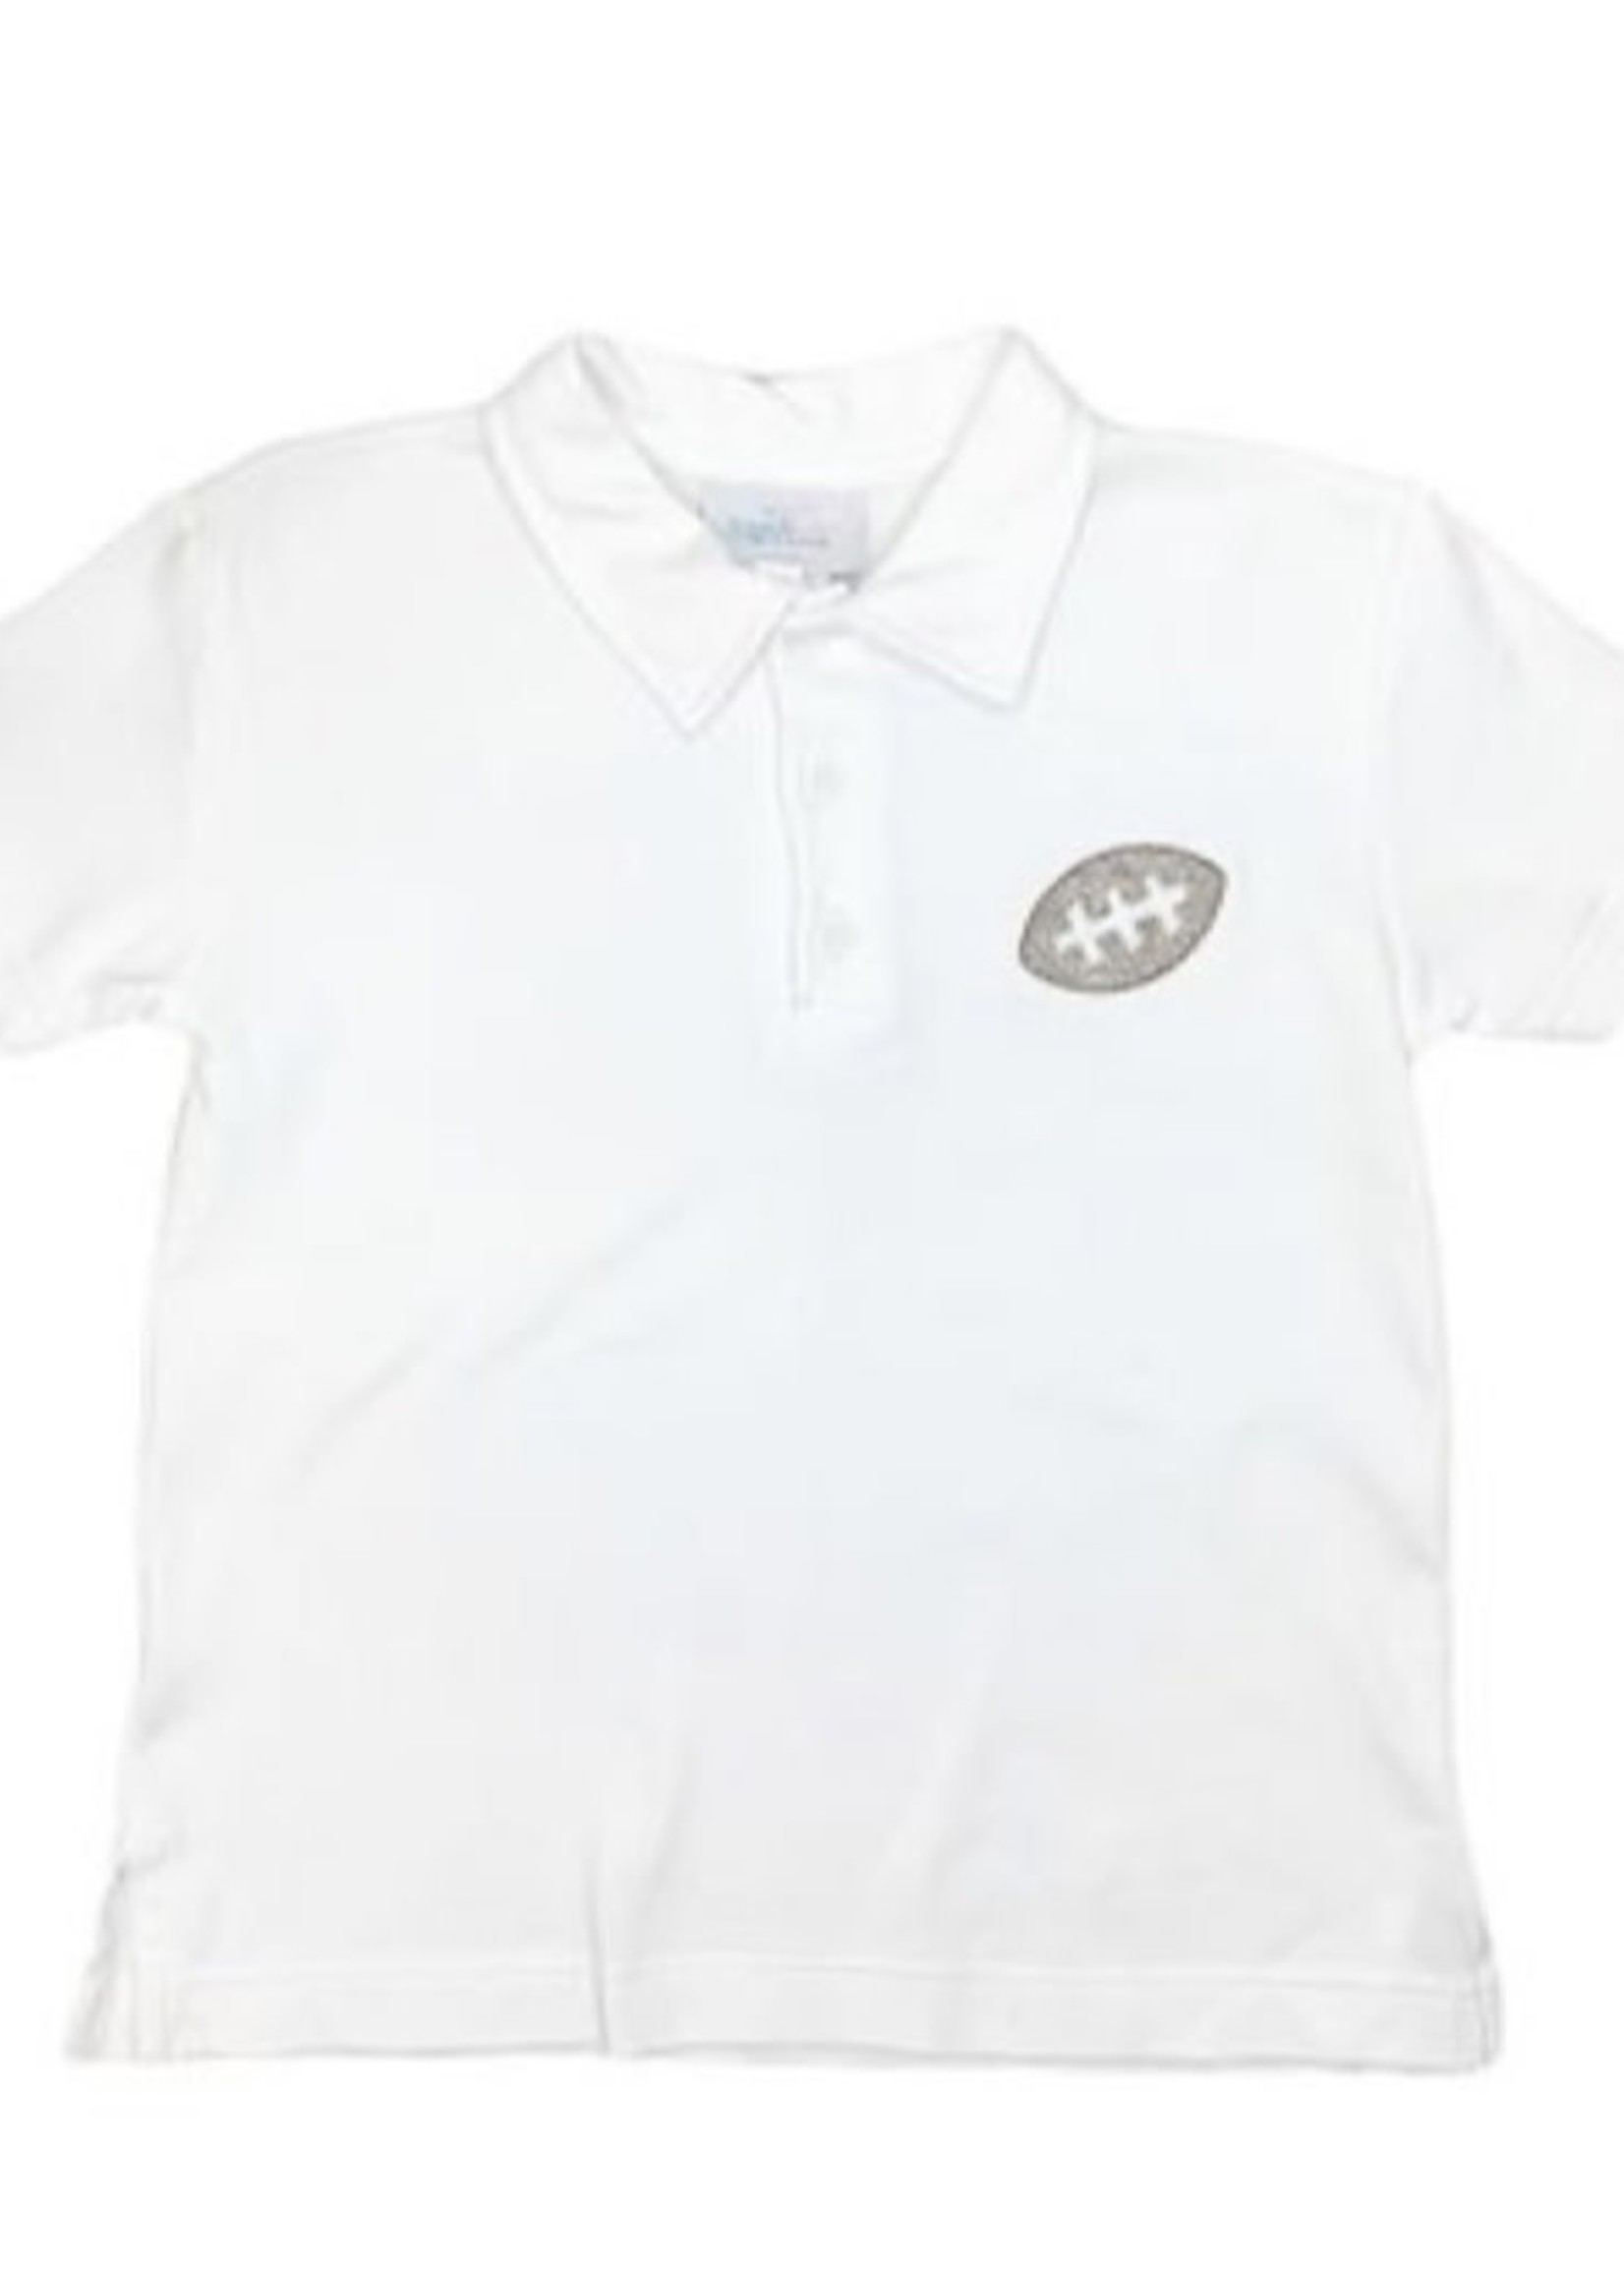 james and lottie White Polo with Football